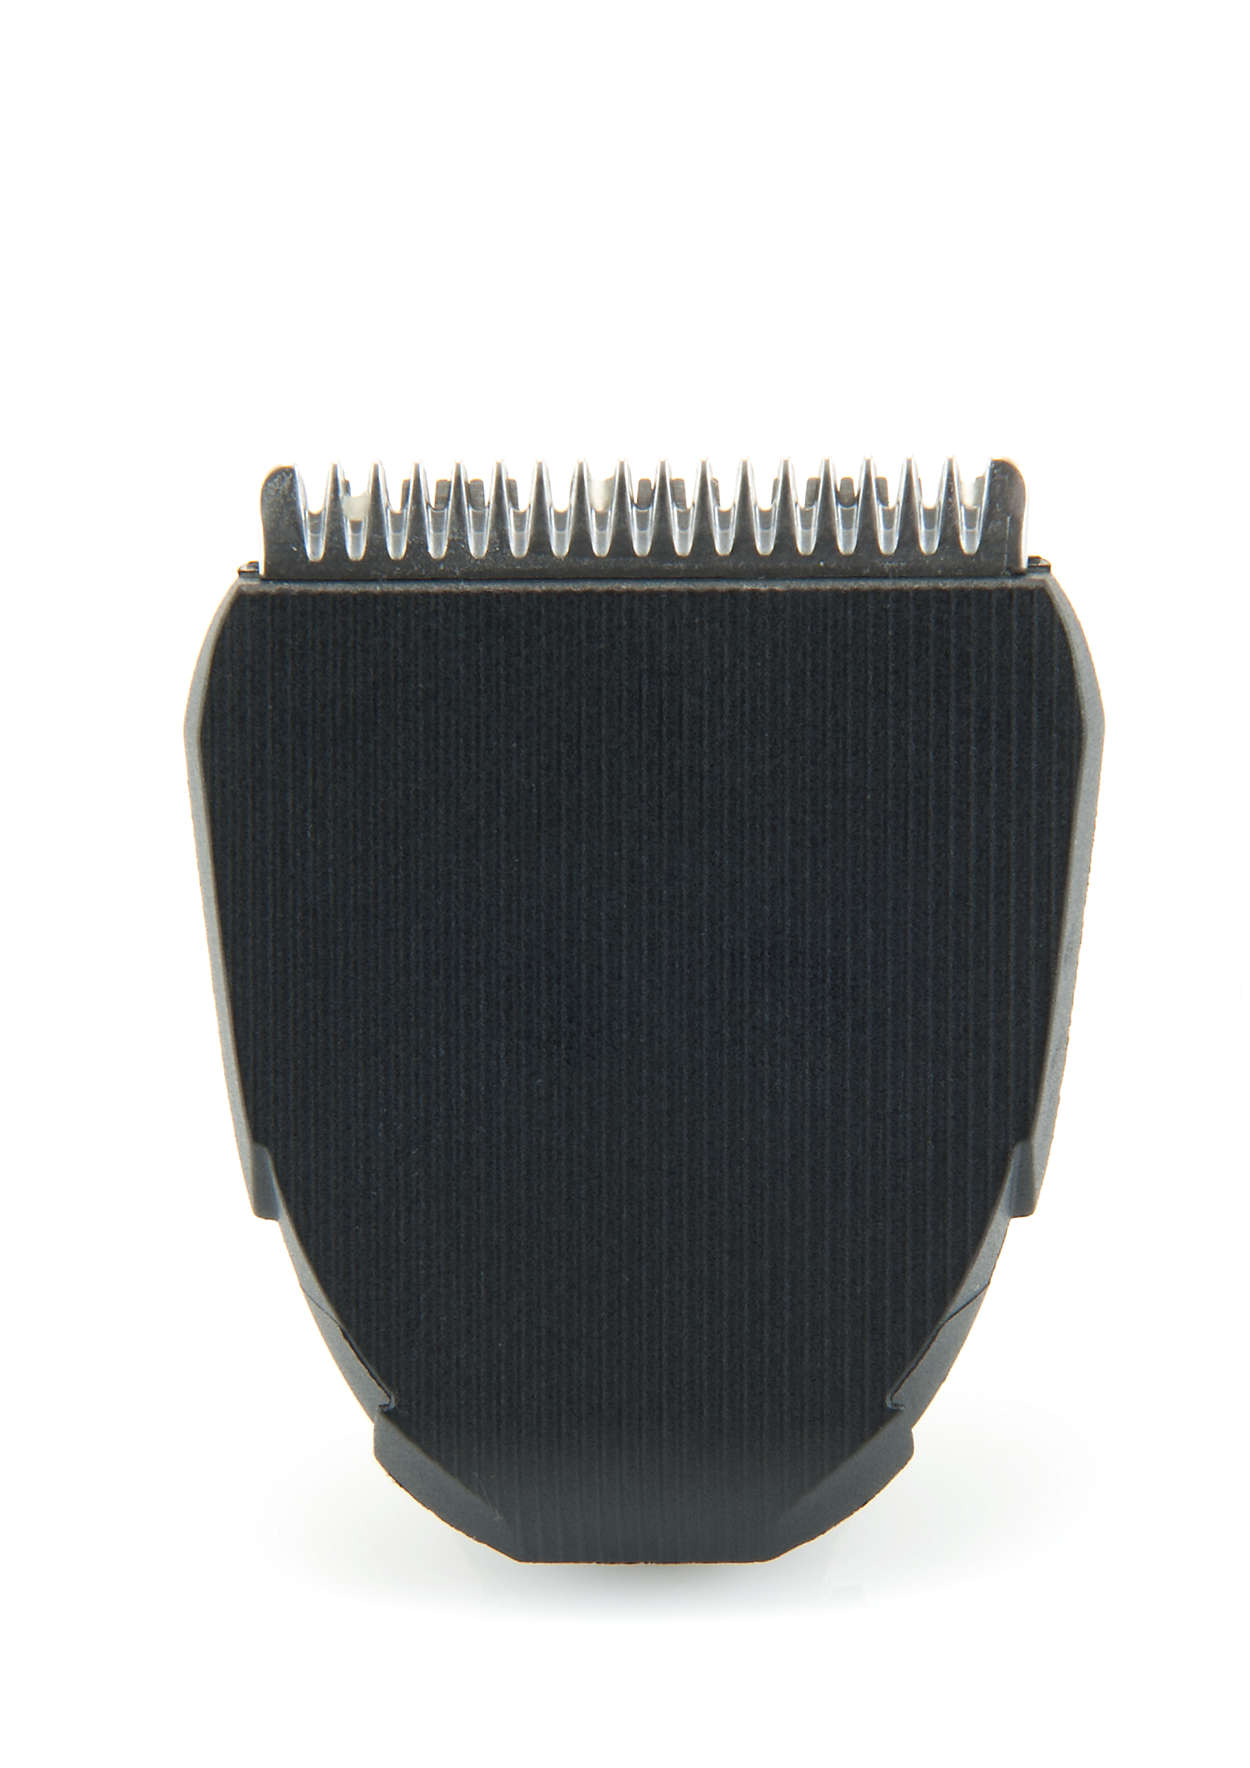 Accessory for your hair clipper